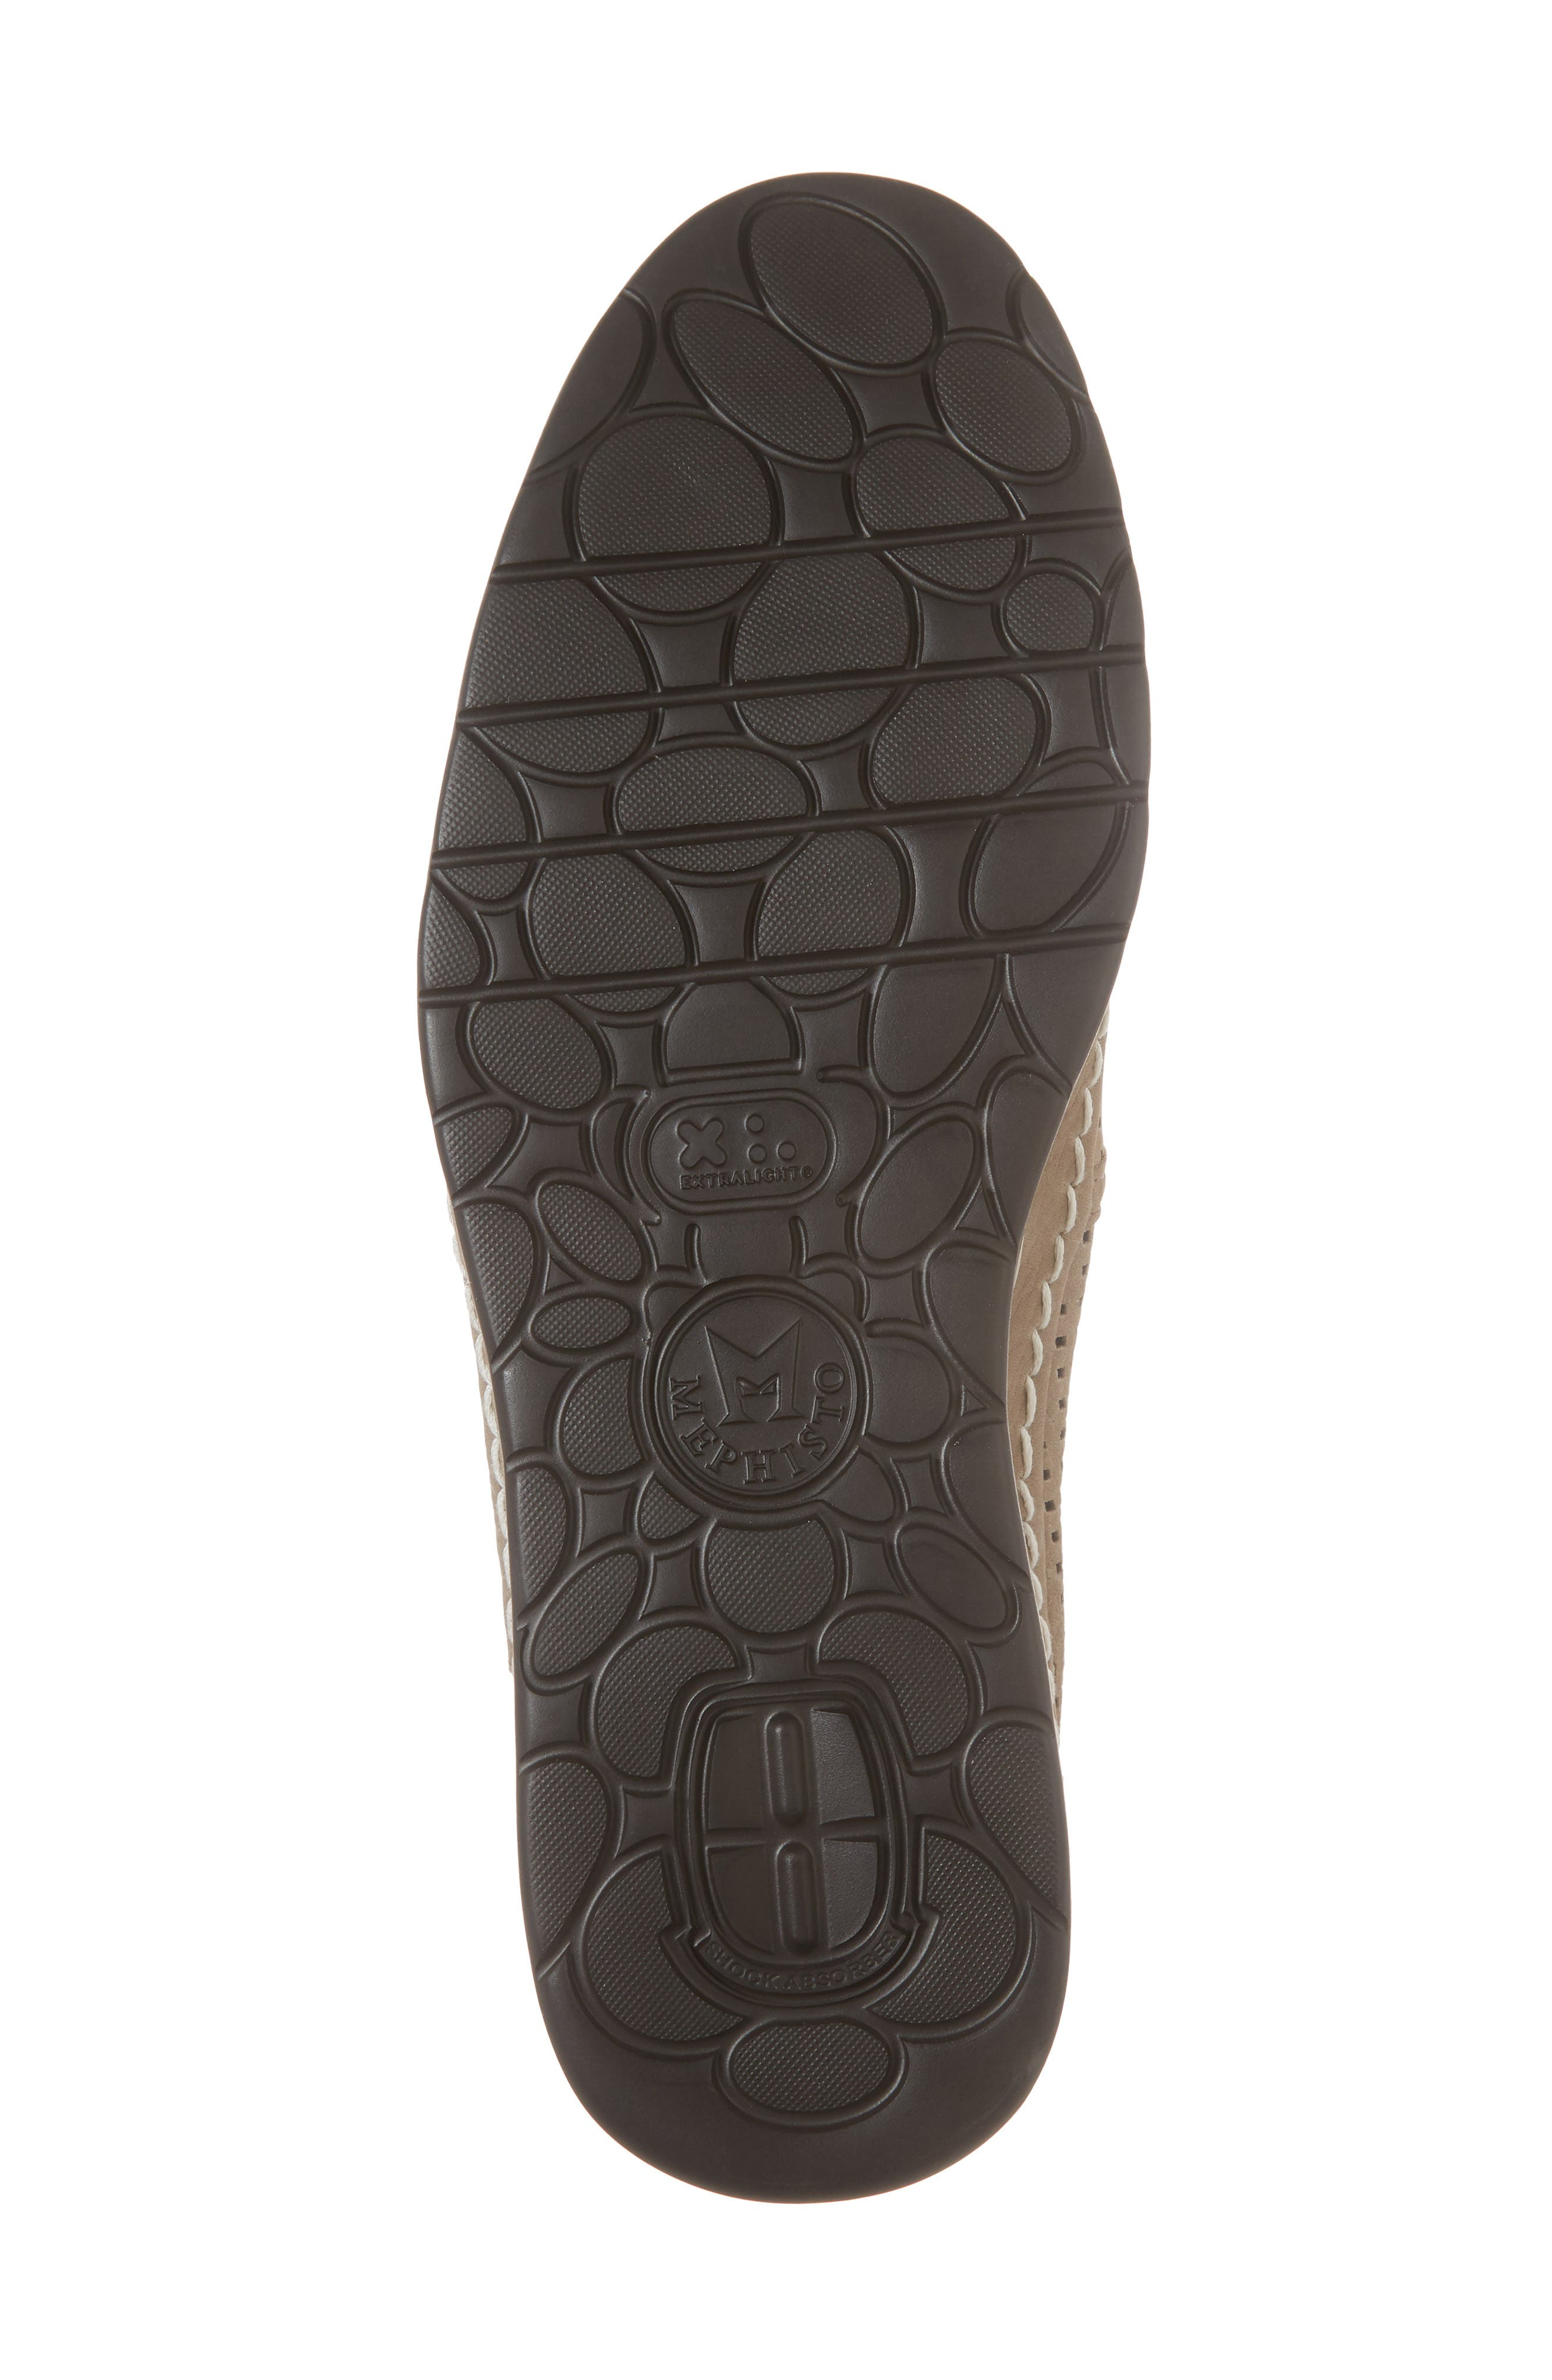 Hadrian Perforated Slip-On,                             Alternate thumbnail 6, color,                             SAND